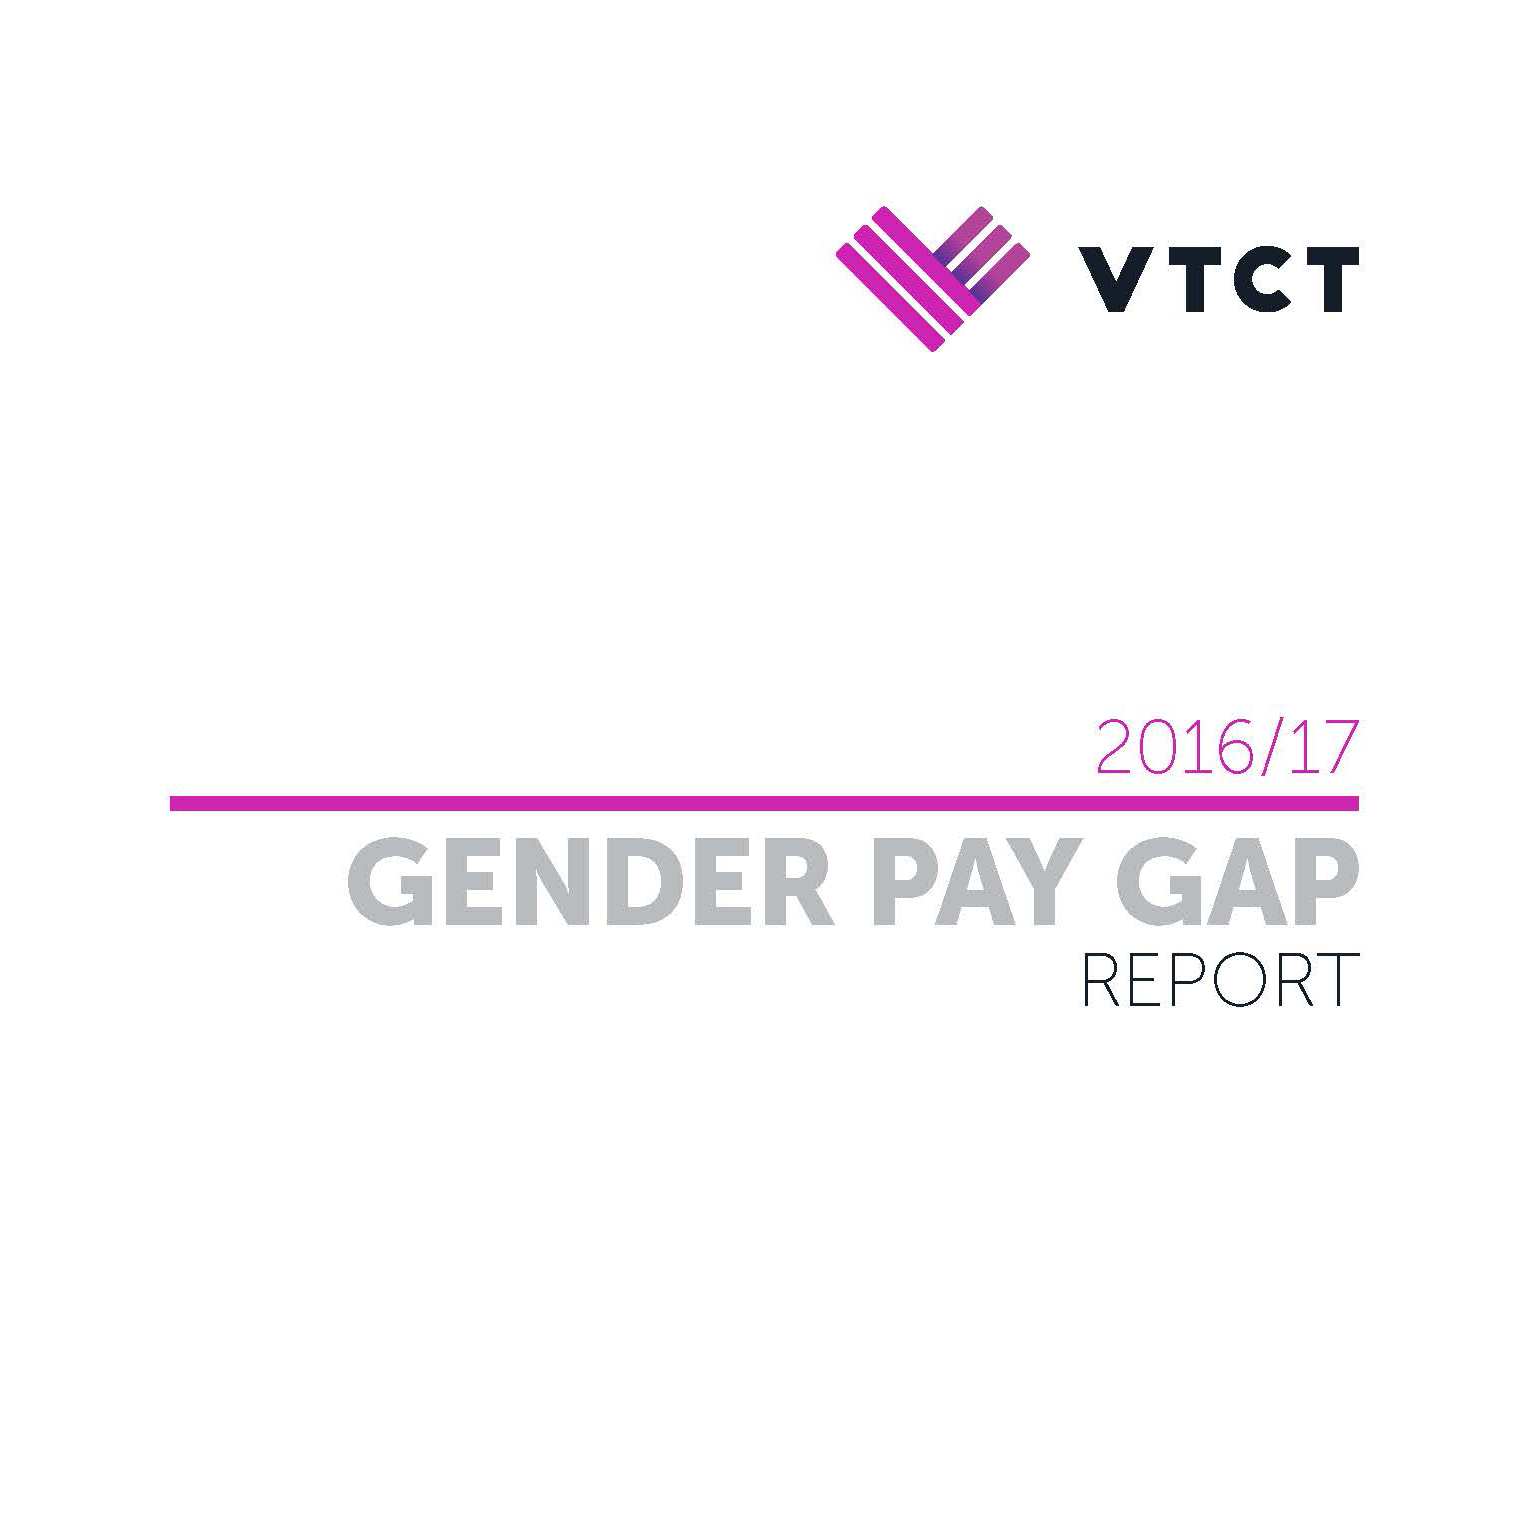 VTCT has released its gender pay gap report